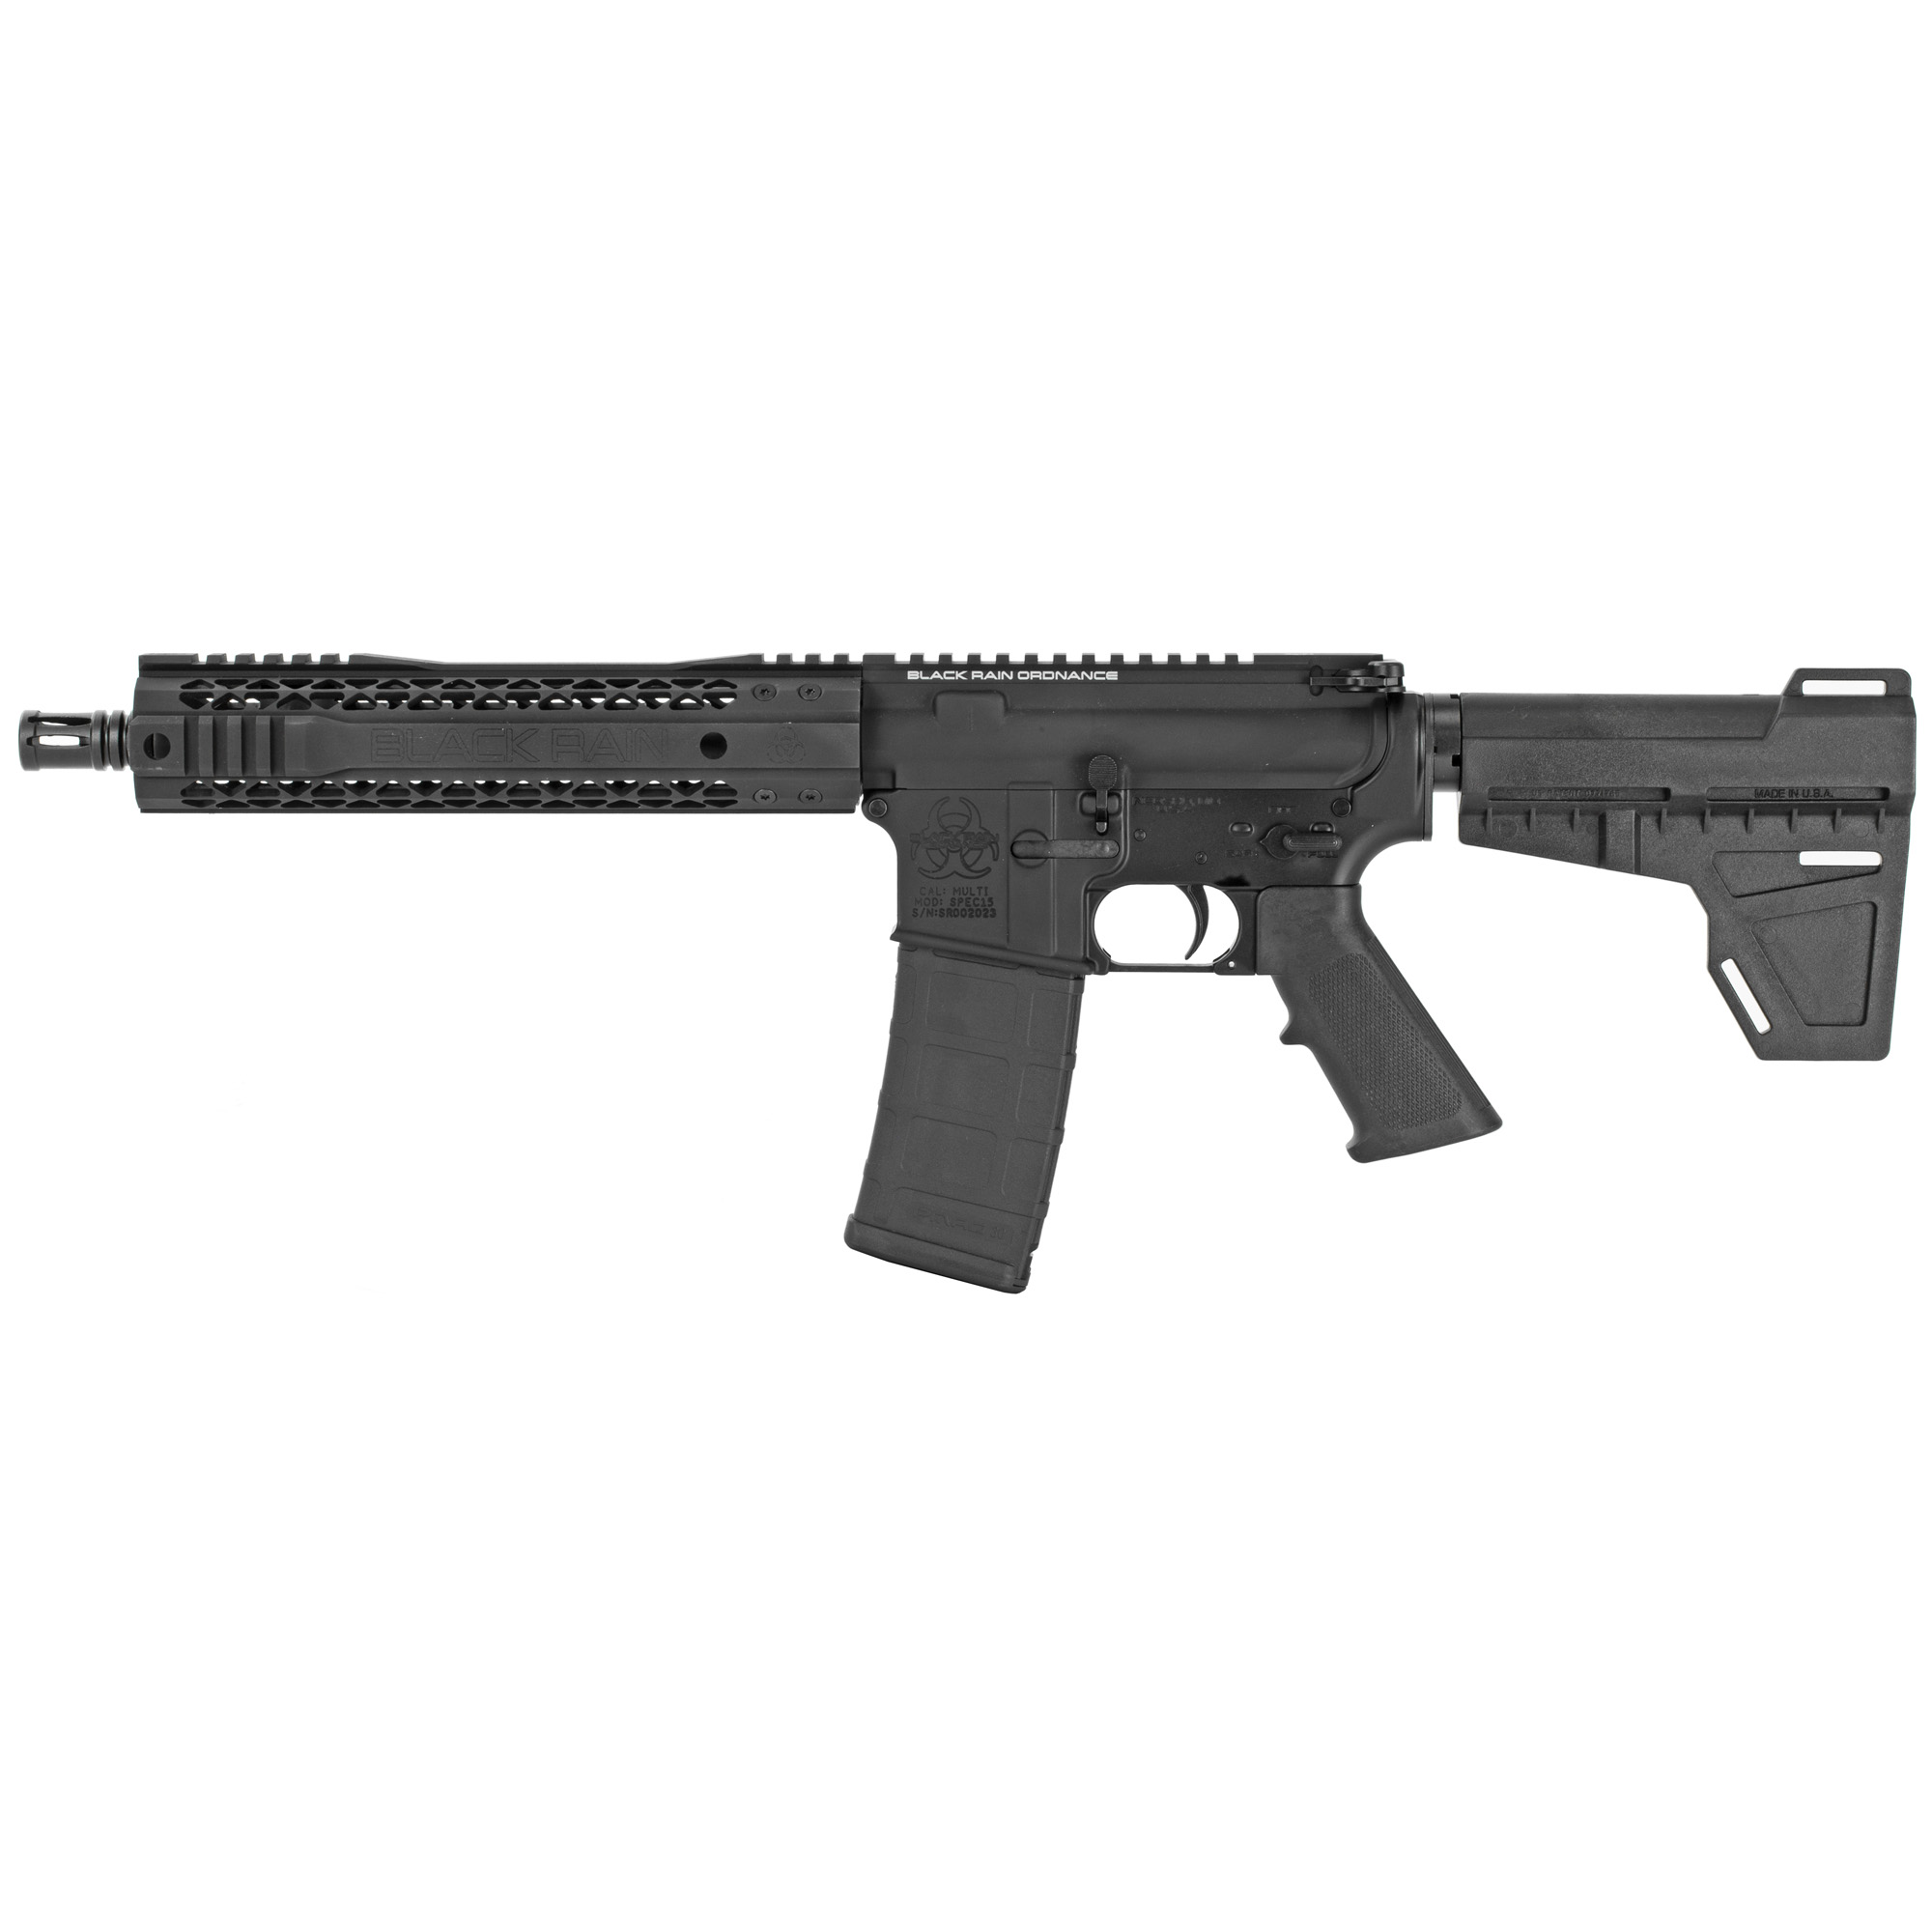 The Black Rain Ordnance Spec series is a line of AR15 pistols built to meet bid requirements for law enforcement and military personnel and as an affordable option for civilian use.